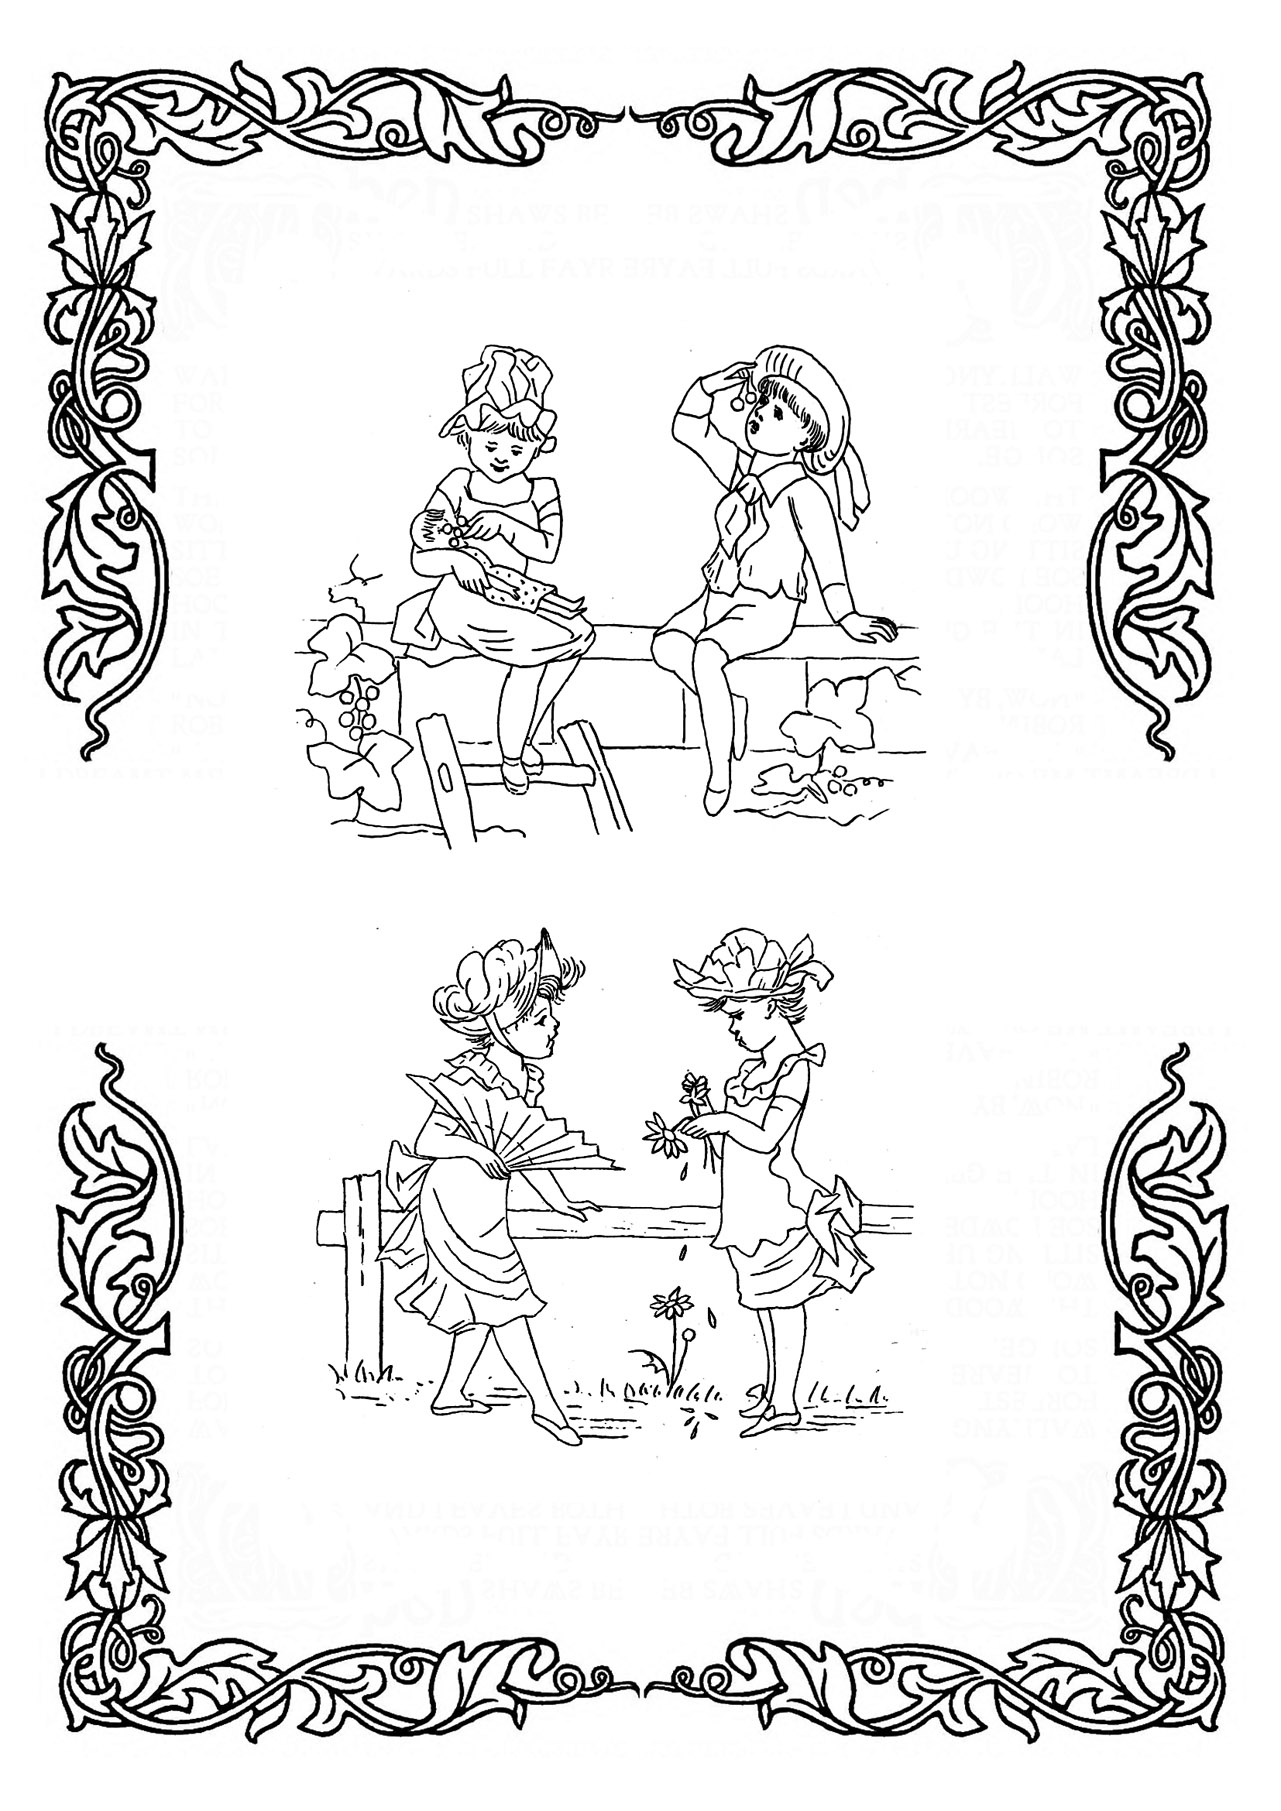 victorian pictures to colour victorian woman coloring pages free printable victorian colour pictures victorian to